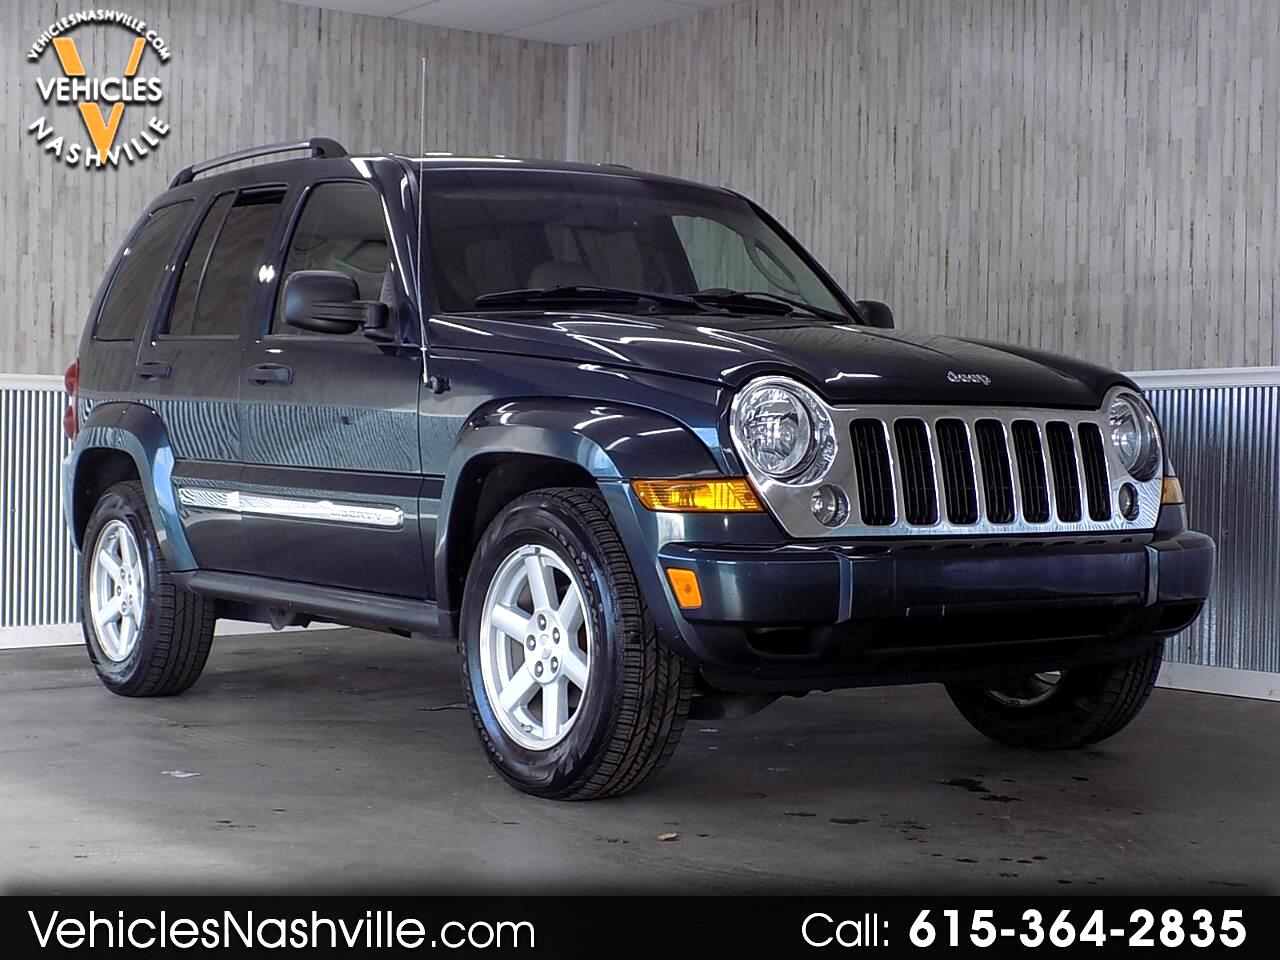 2006 Jeep Liberty Limited 2WD